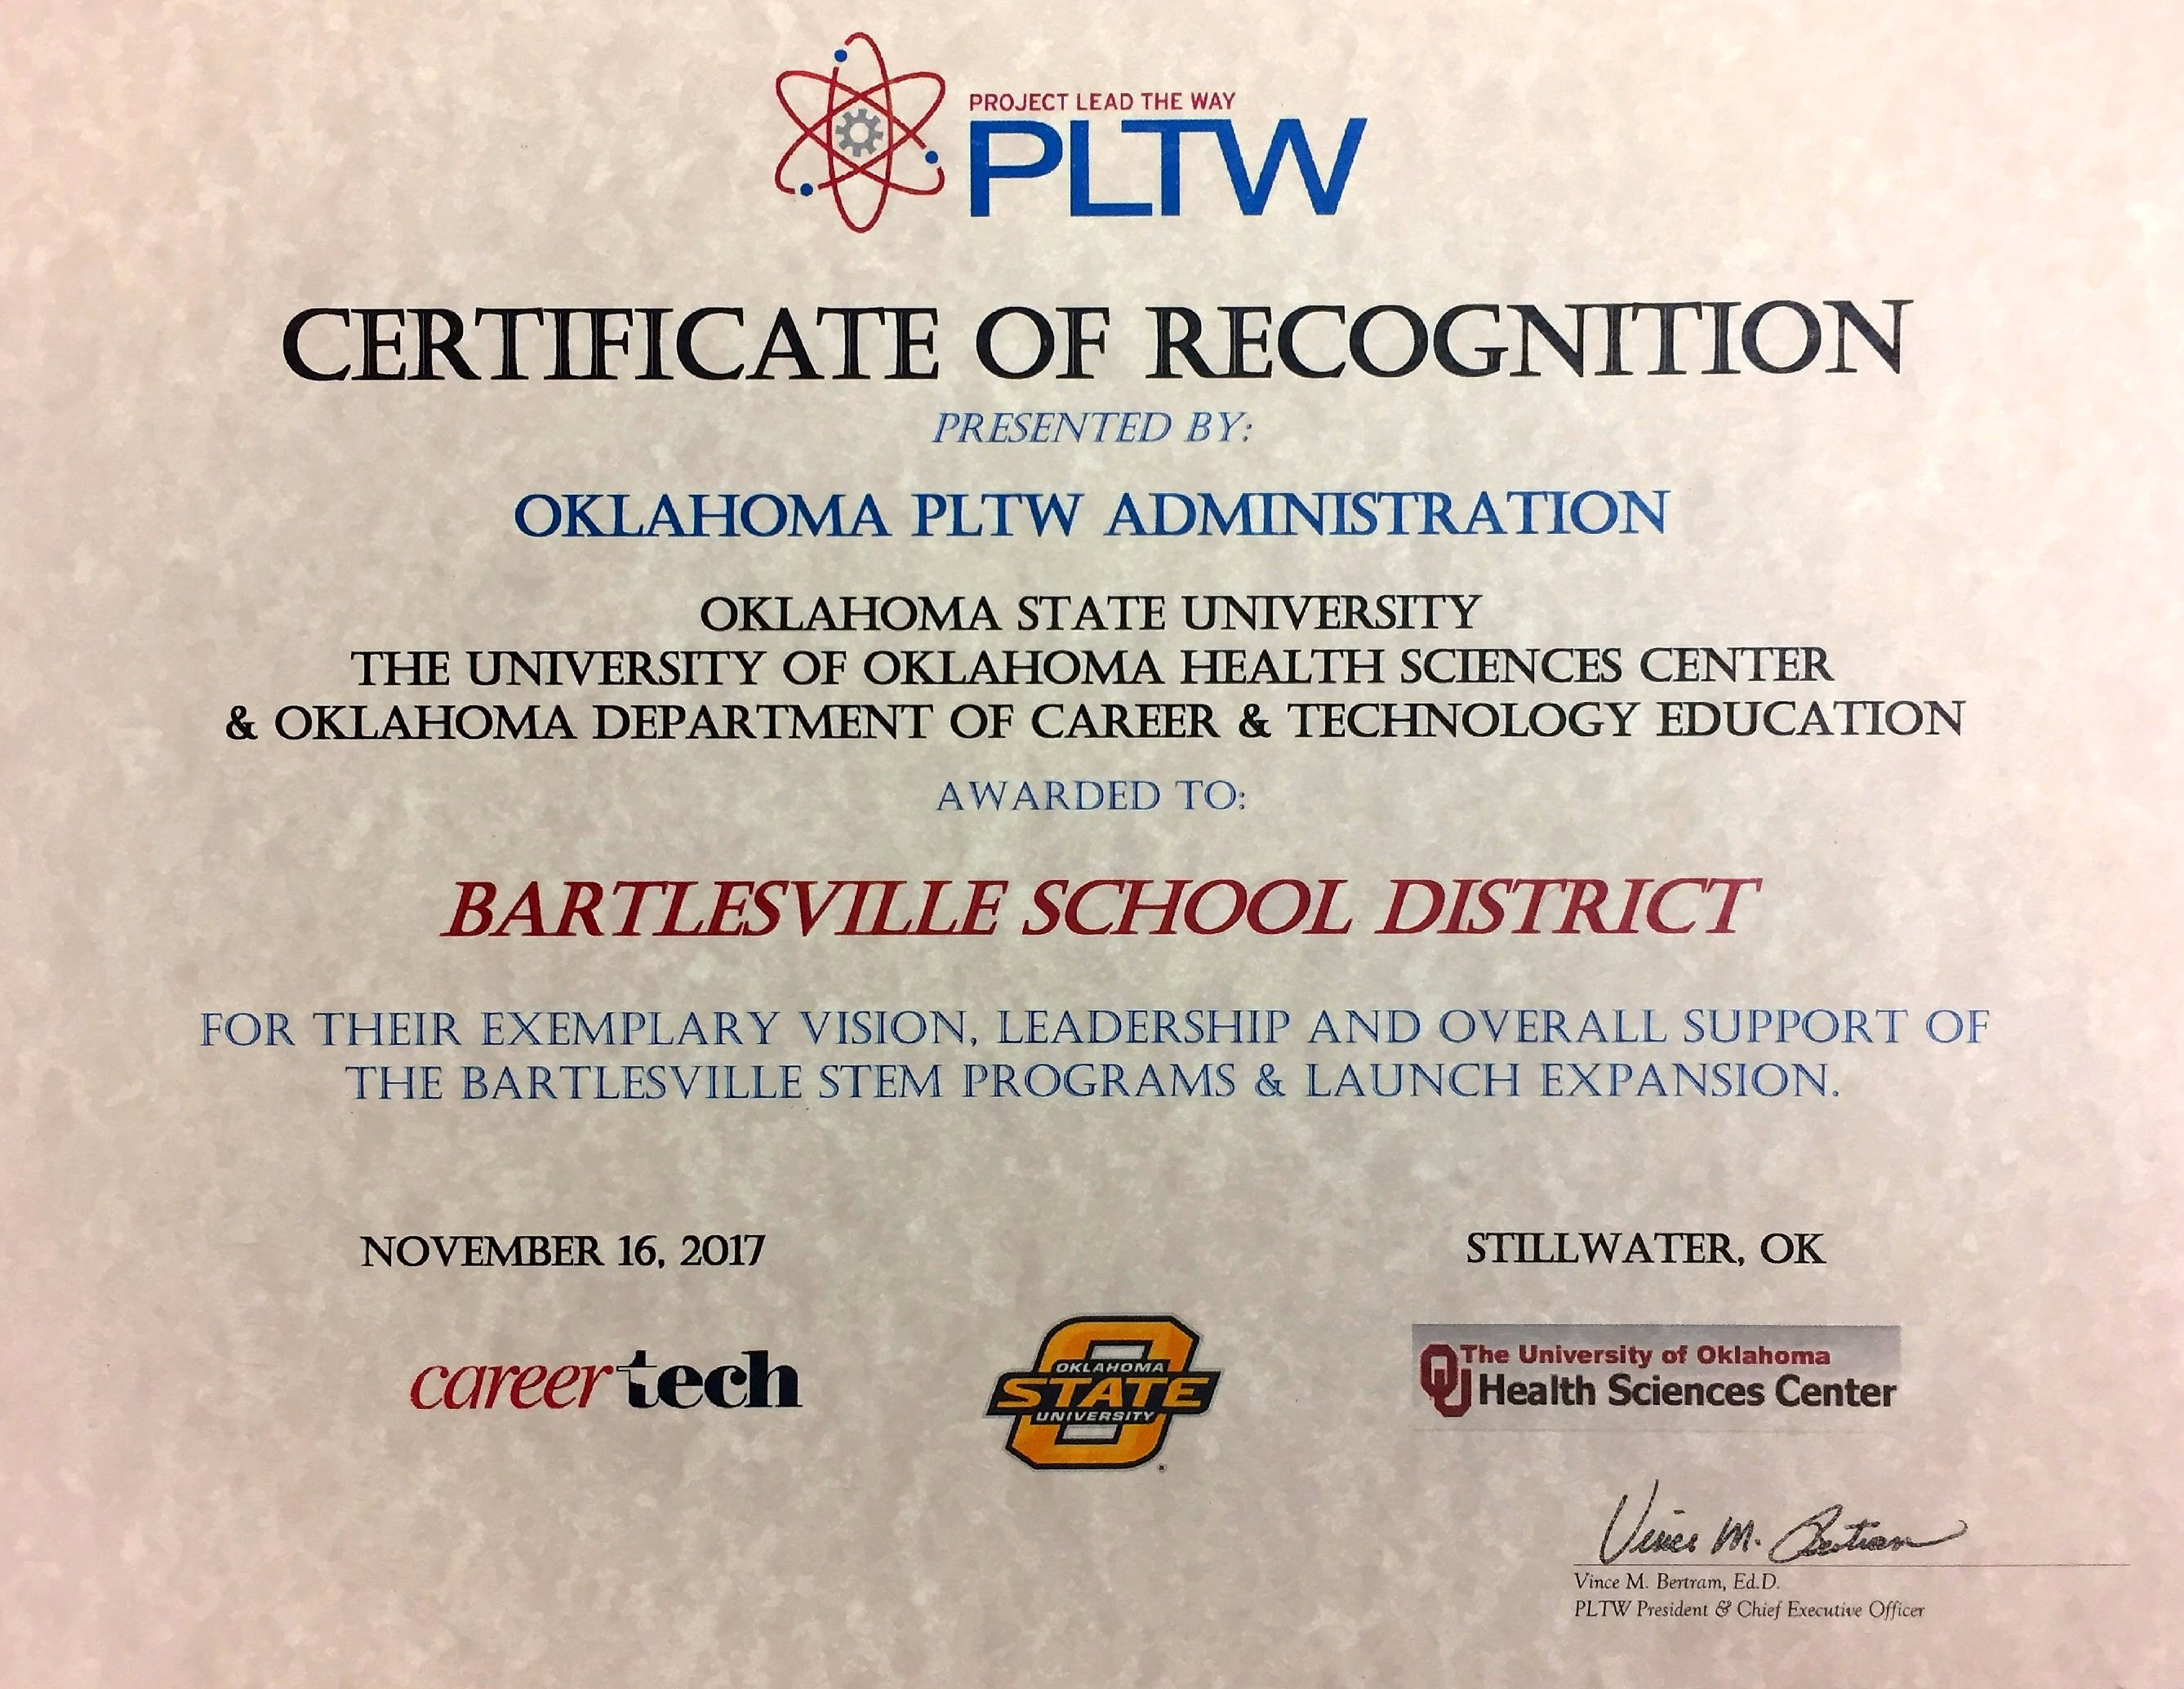 PLTW Certificate of Recognition